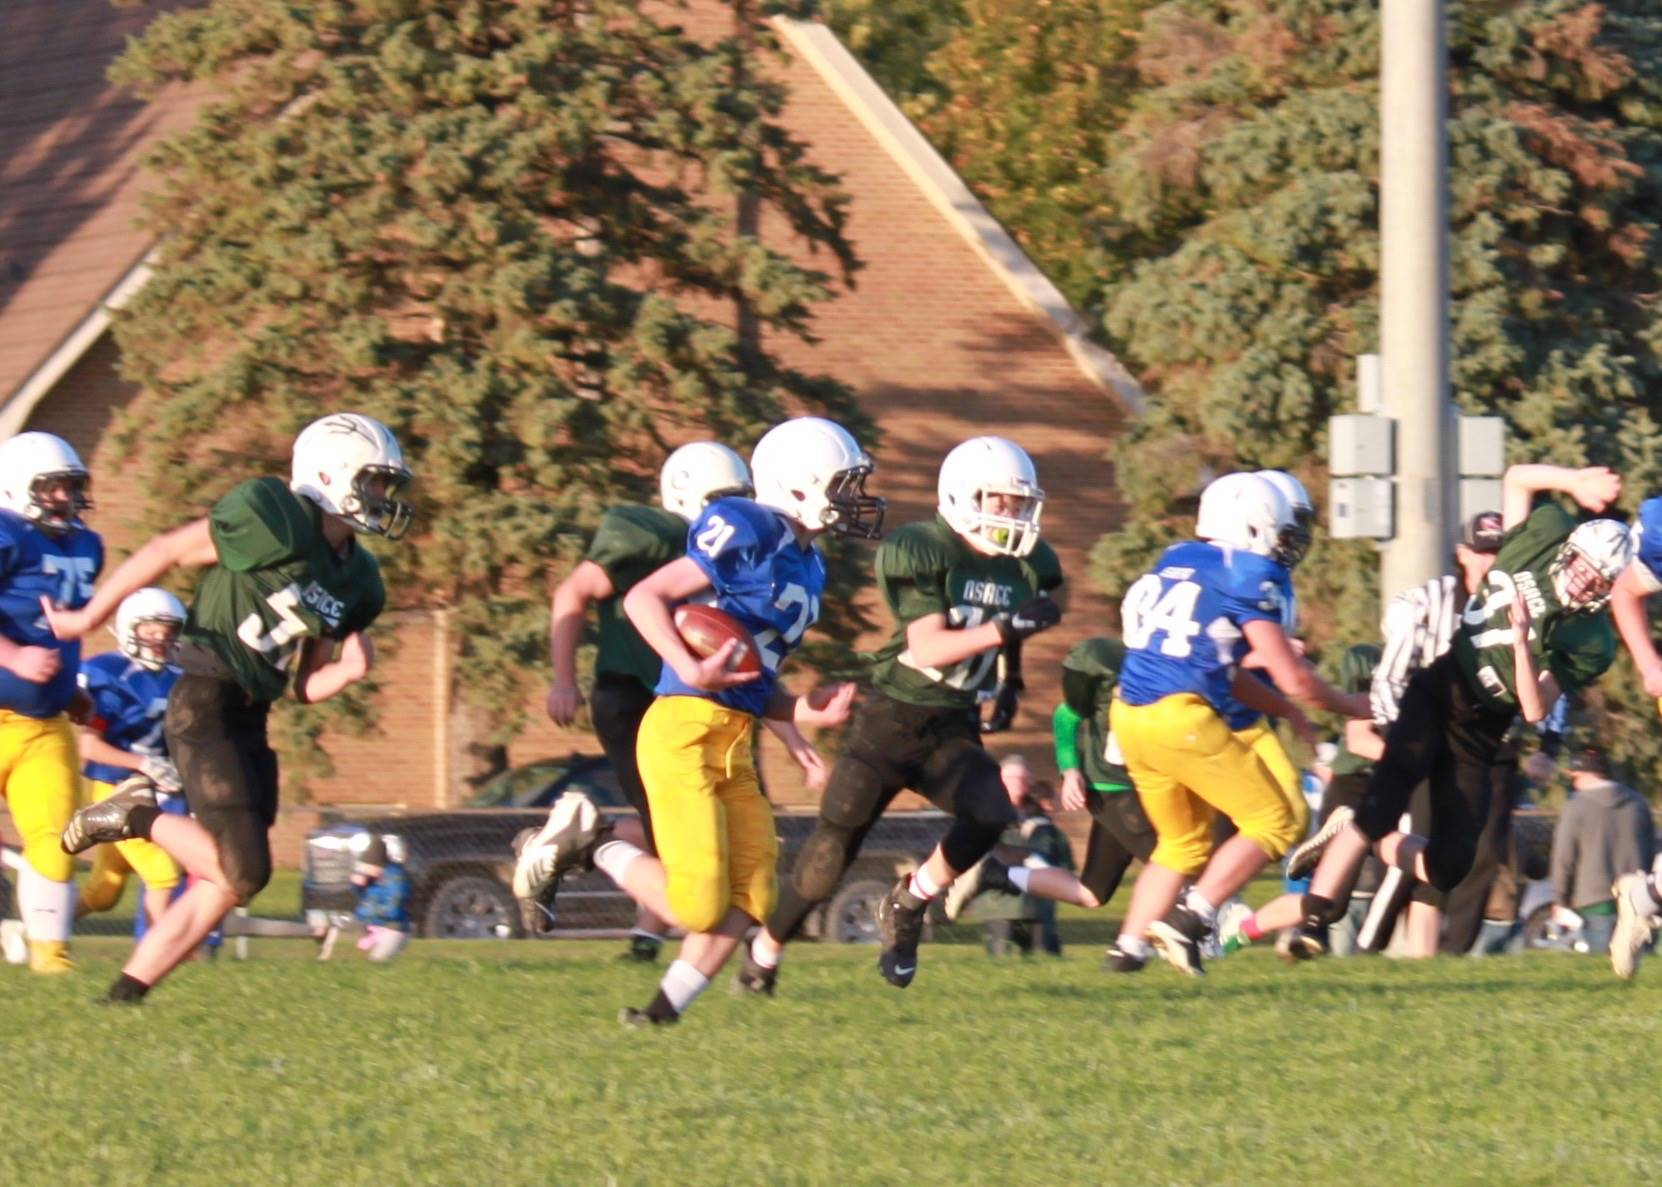 football players competing in a game